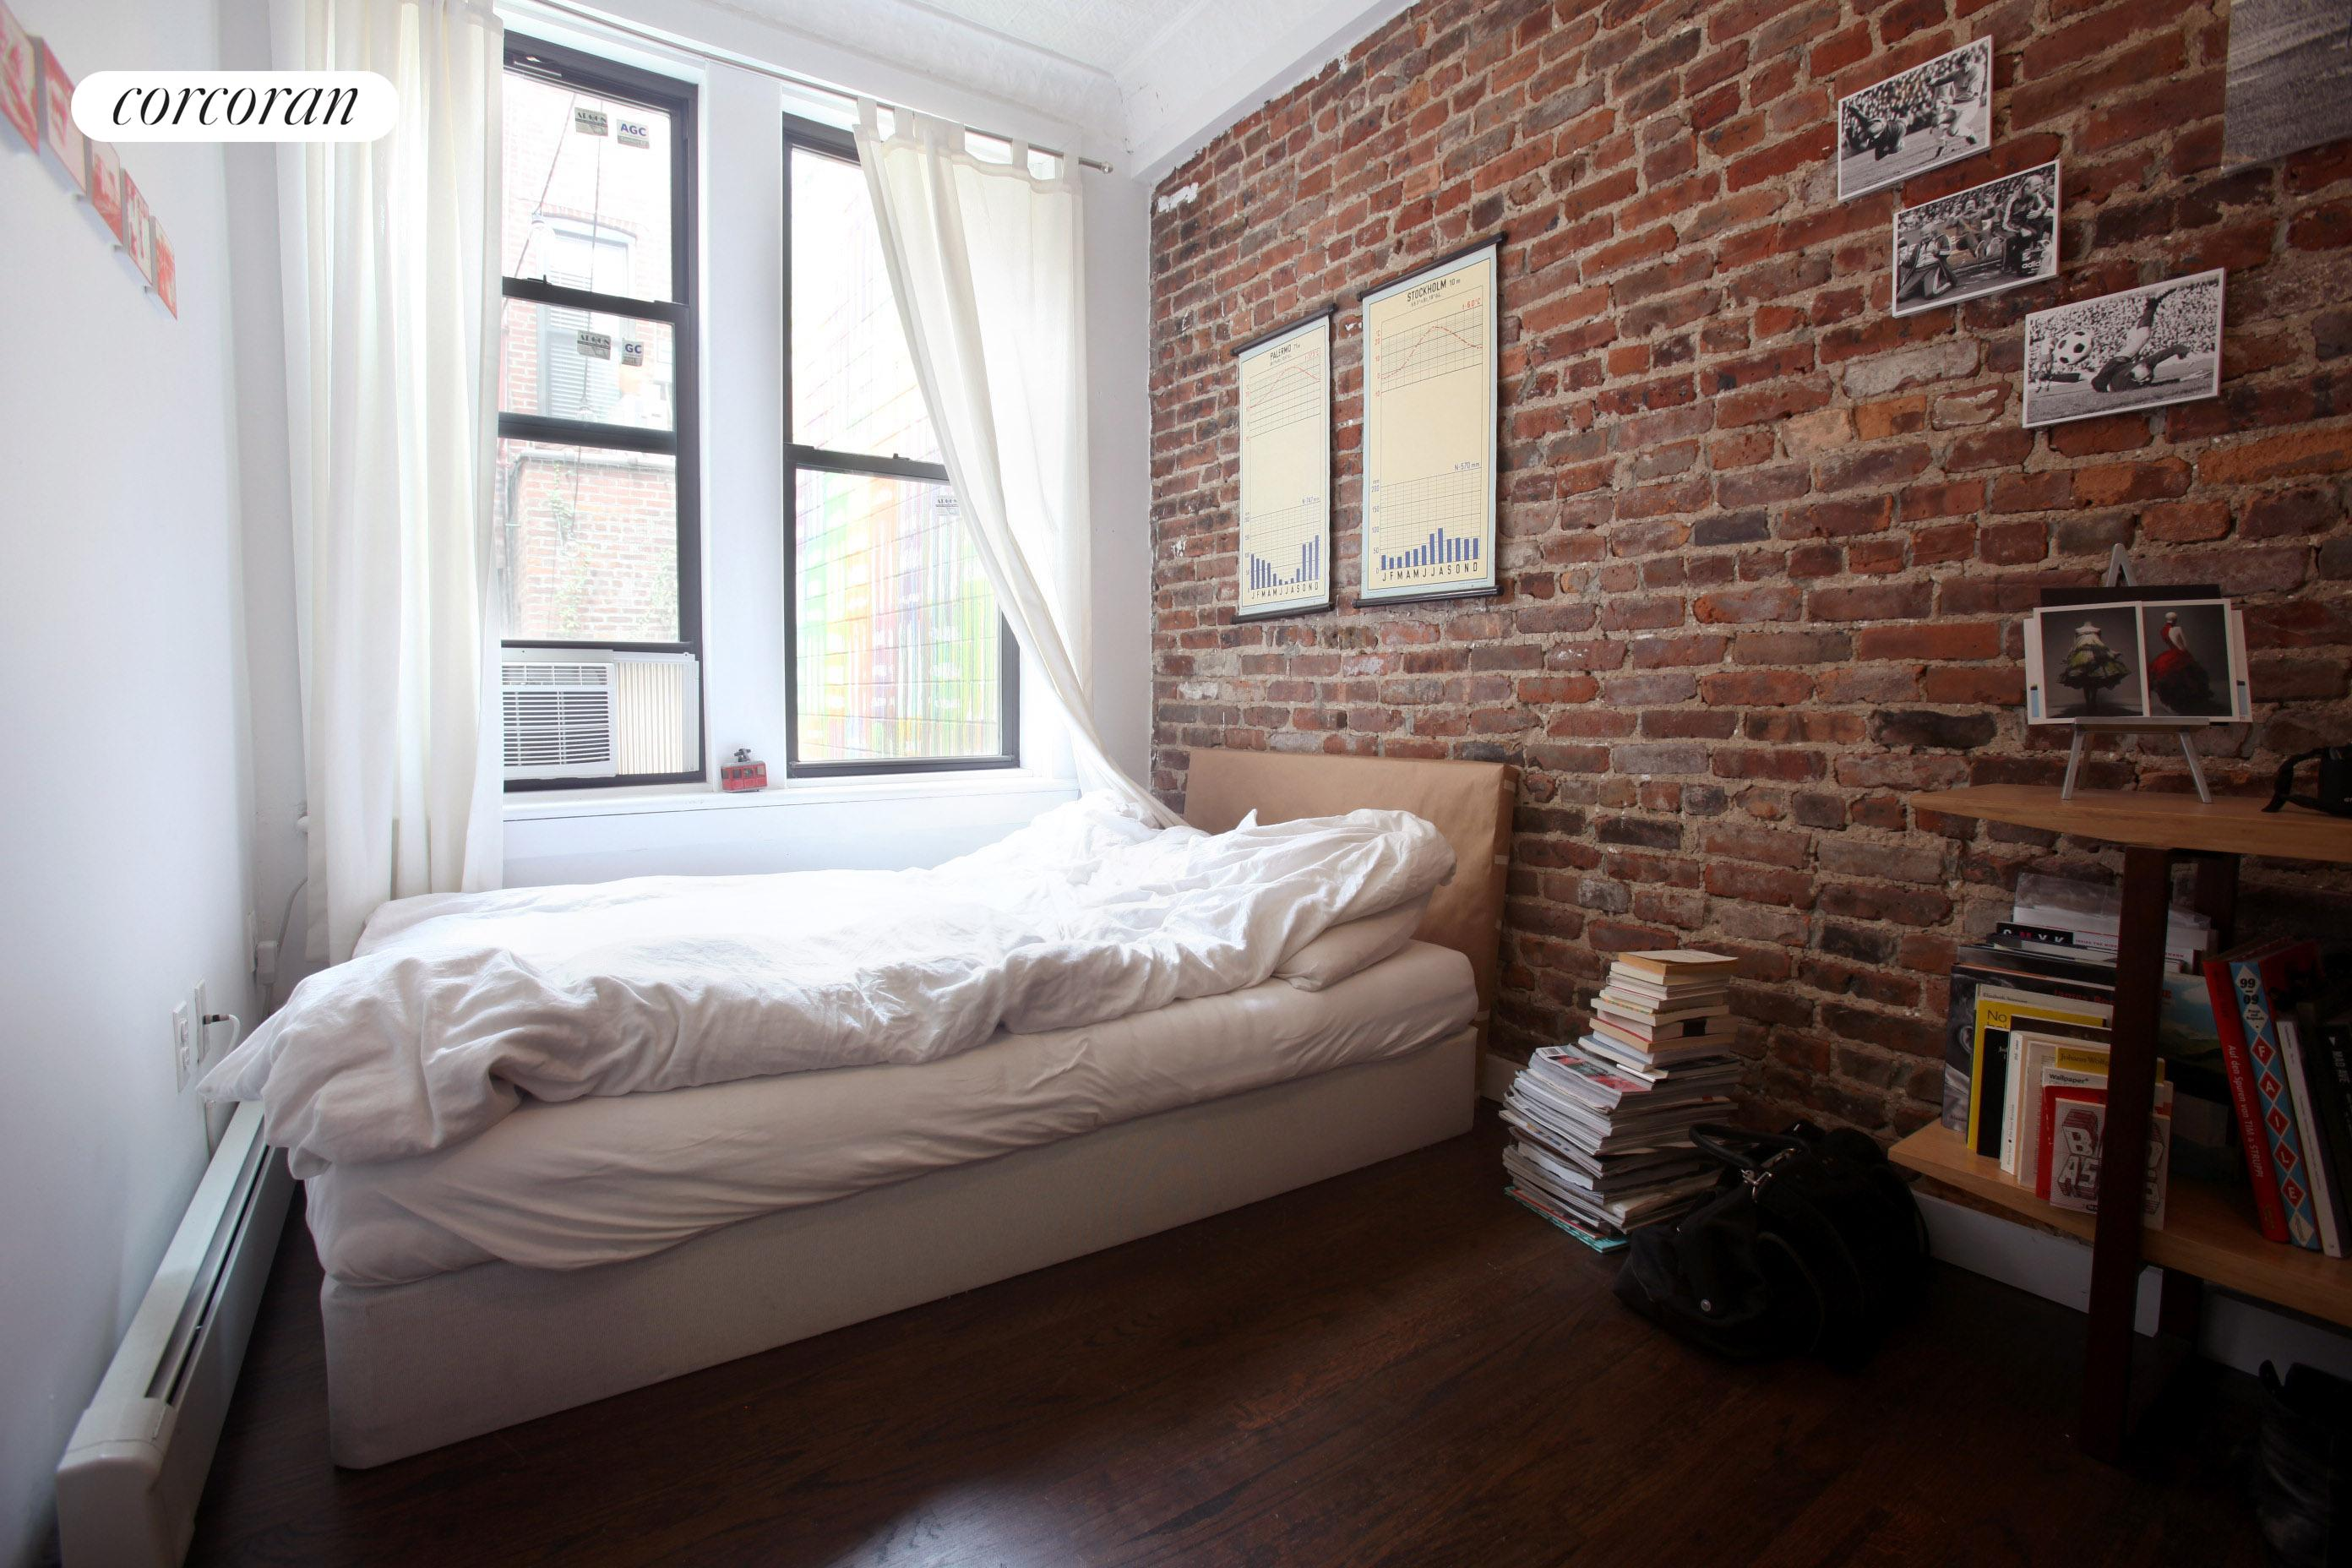 Perfect Corcoran, 32 Frost Street, Apt. 1, Williamsburg Rentals, Brooklyn Rentals,  Williamsburg Rental Building For Rent, New York Rentals, Maurice Singer Great Ideas